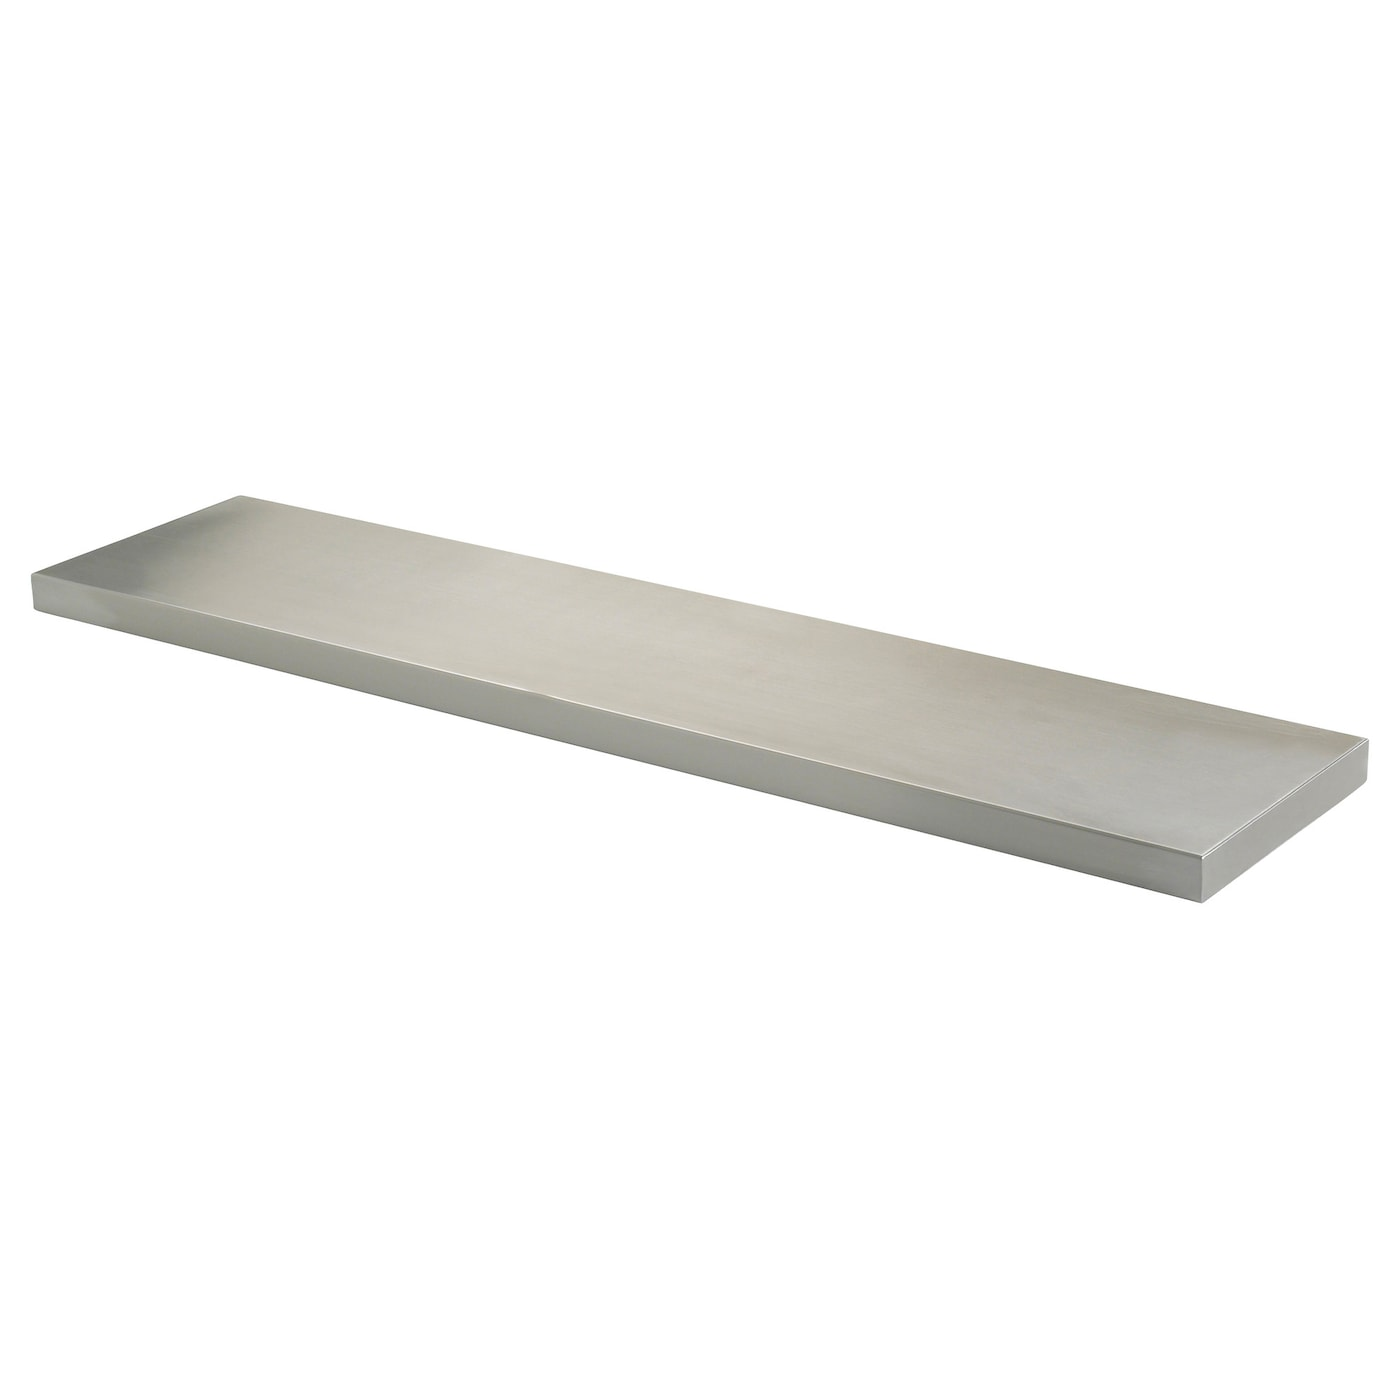 Ekby mossby shelf stainless steel 119x28 cm ikea ikea ekby mossby shelf amipublicfo Image collections